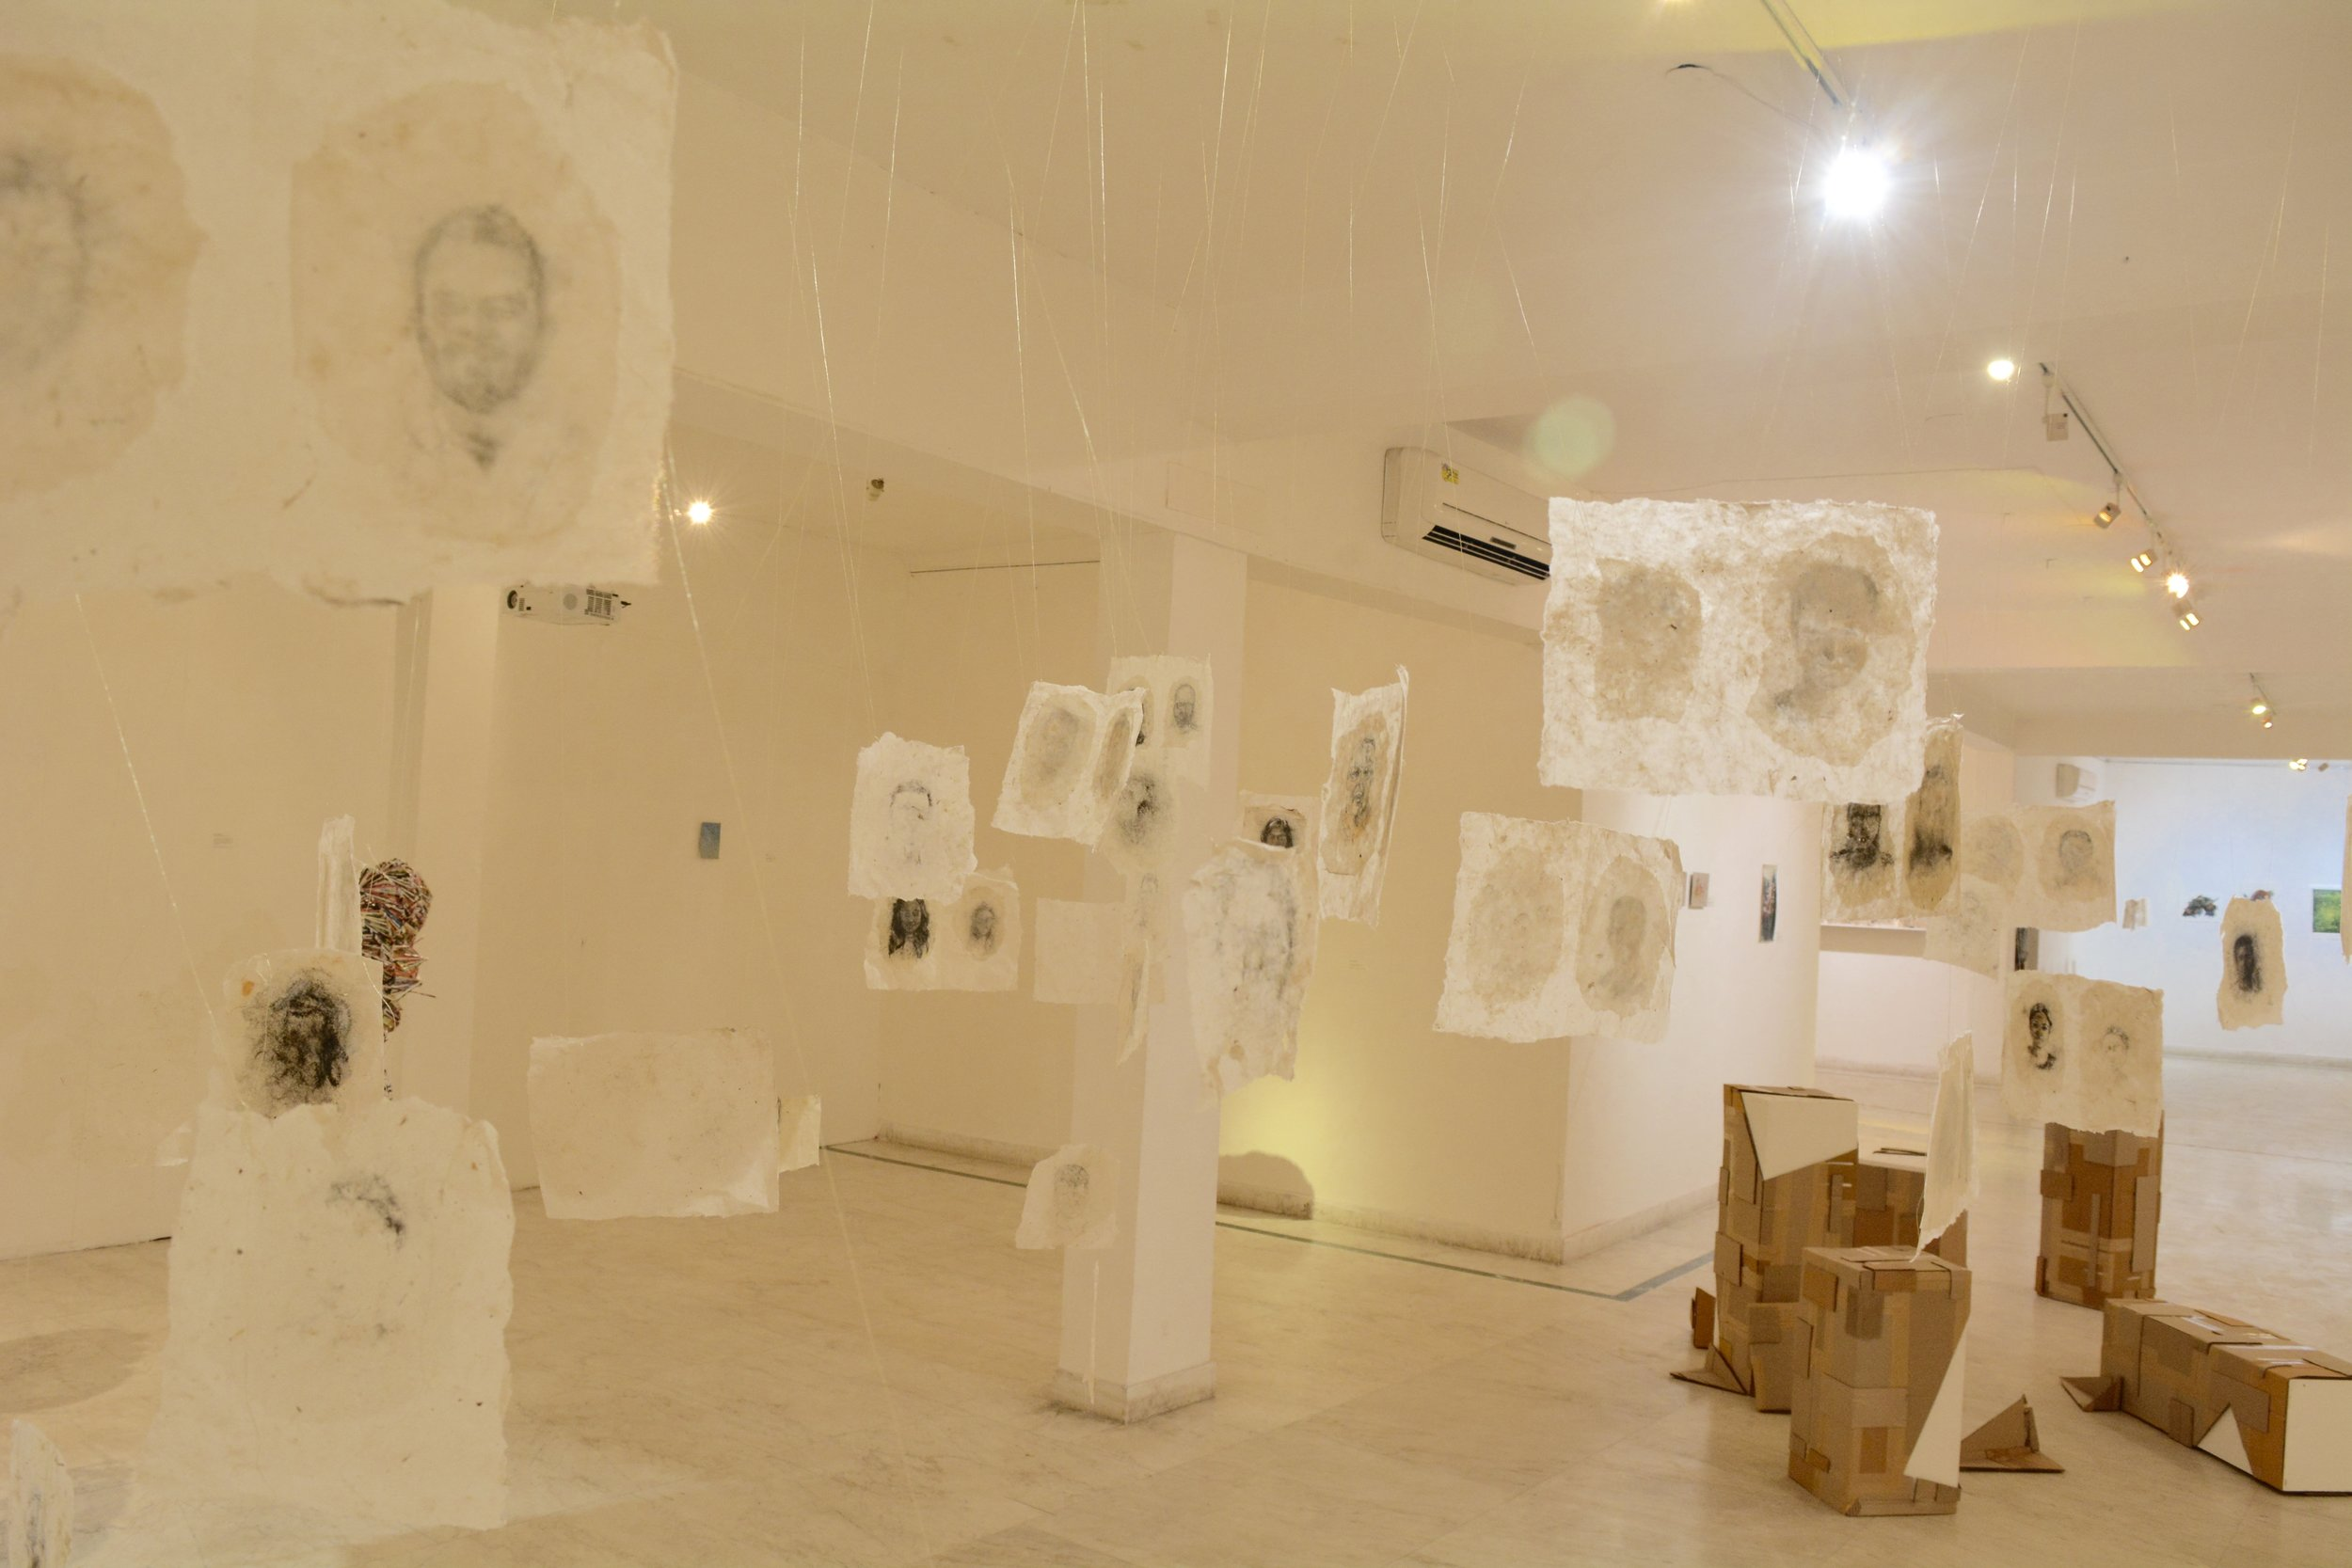 Rice paper hung from gold thread, calling the viewer's attention to our fragility and sacredness